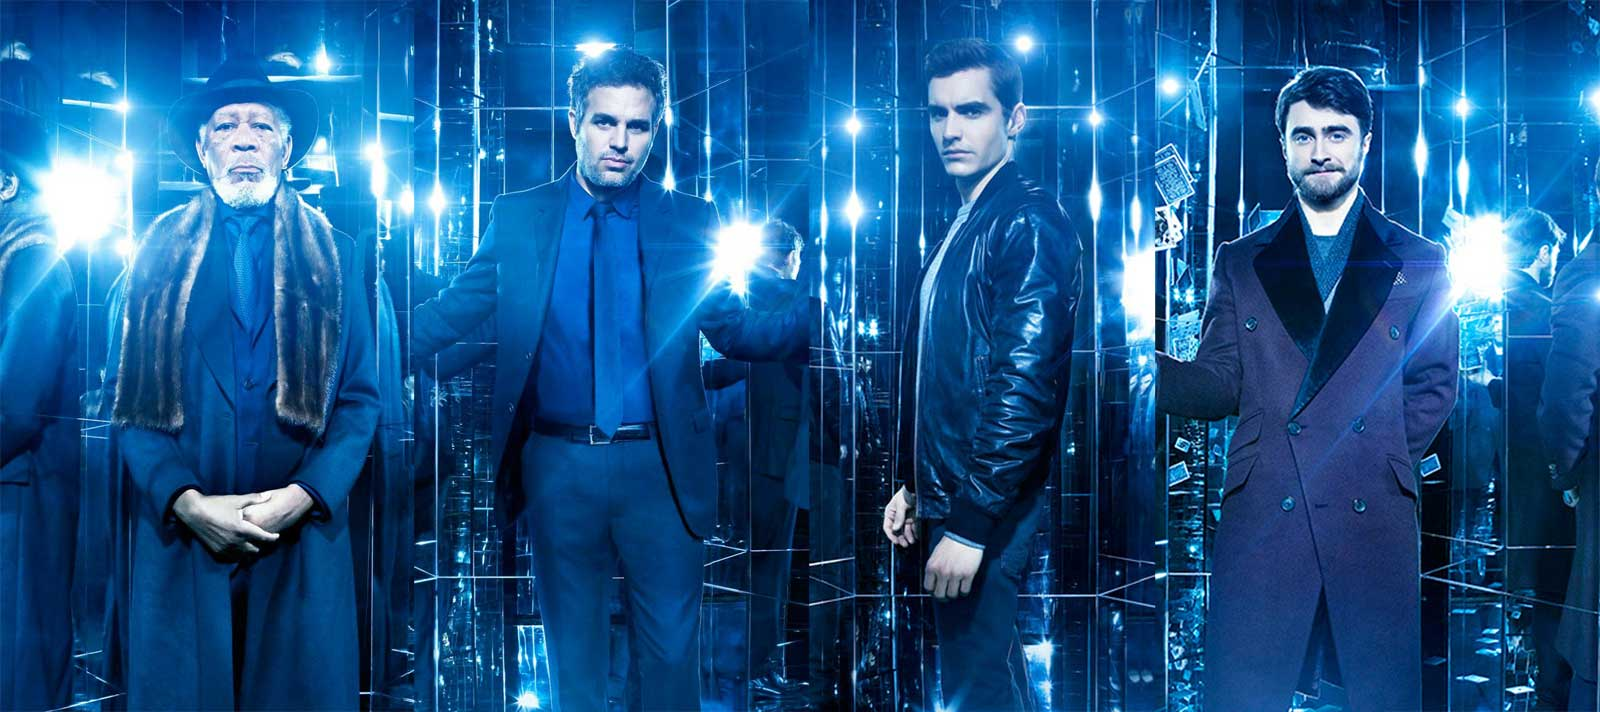 Now You See Me 2, Poster italiano, Poster personaggi e Grouping Poster